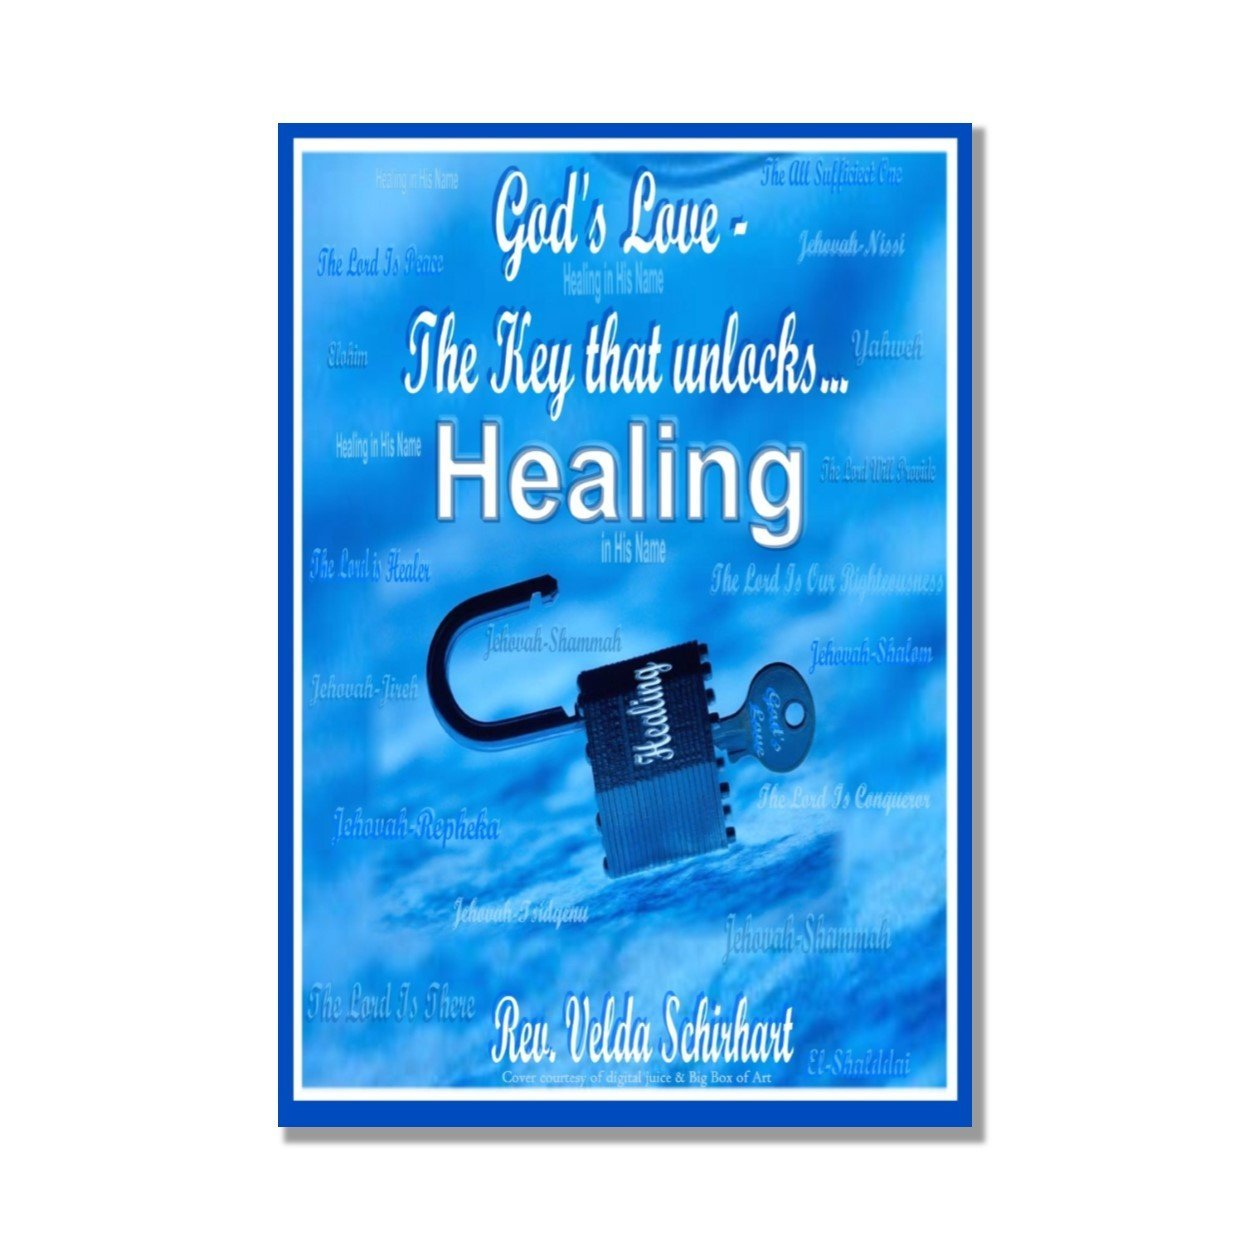 Httpwww Overlordsofchaos Comhtmlorigin Of The Word Jew Html: The Key That Unlocks Healing (2 CDs)